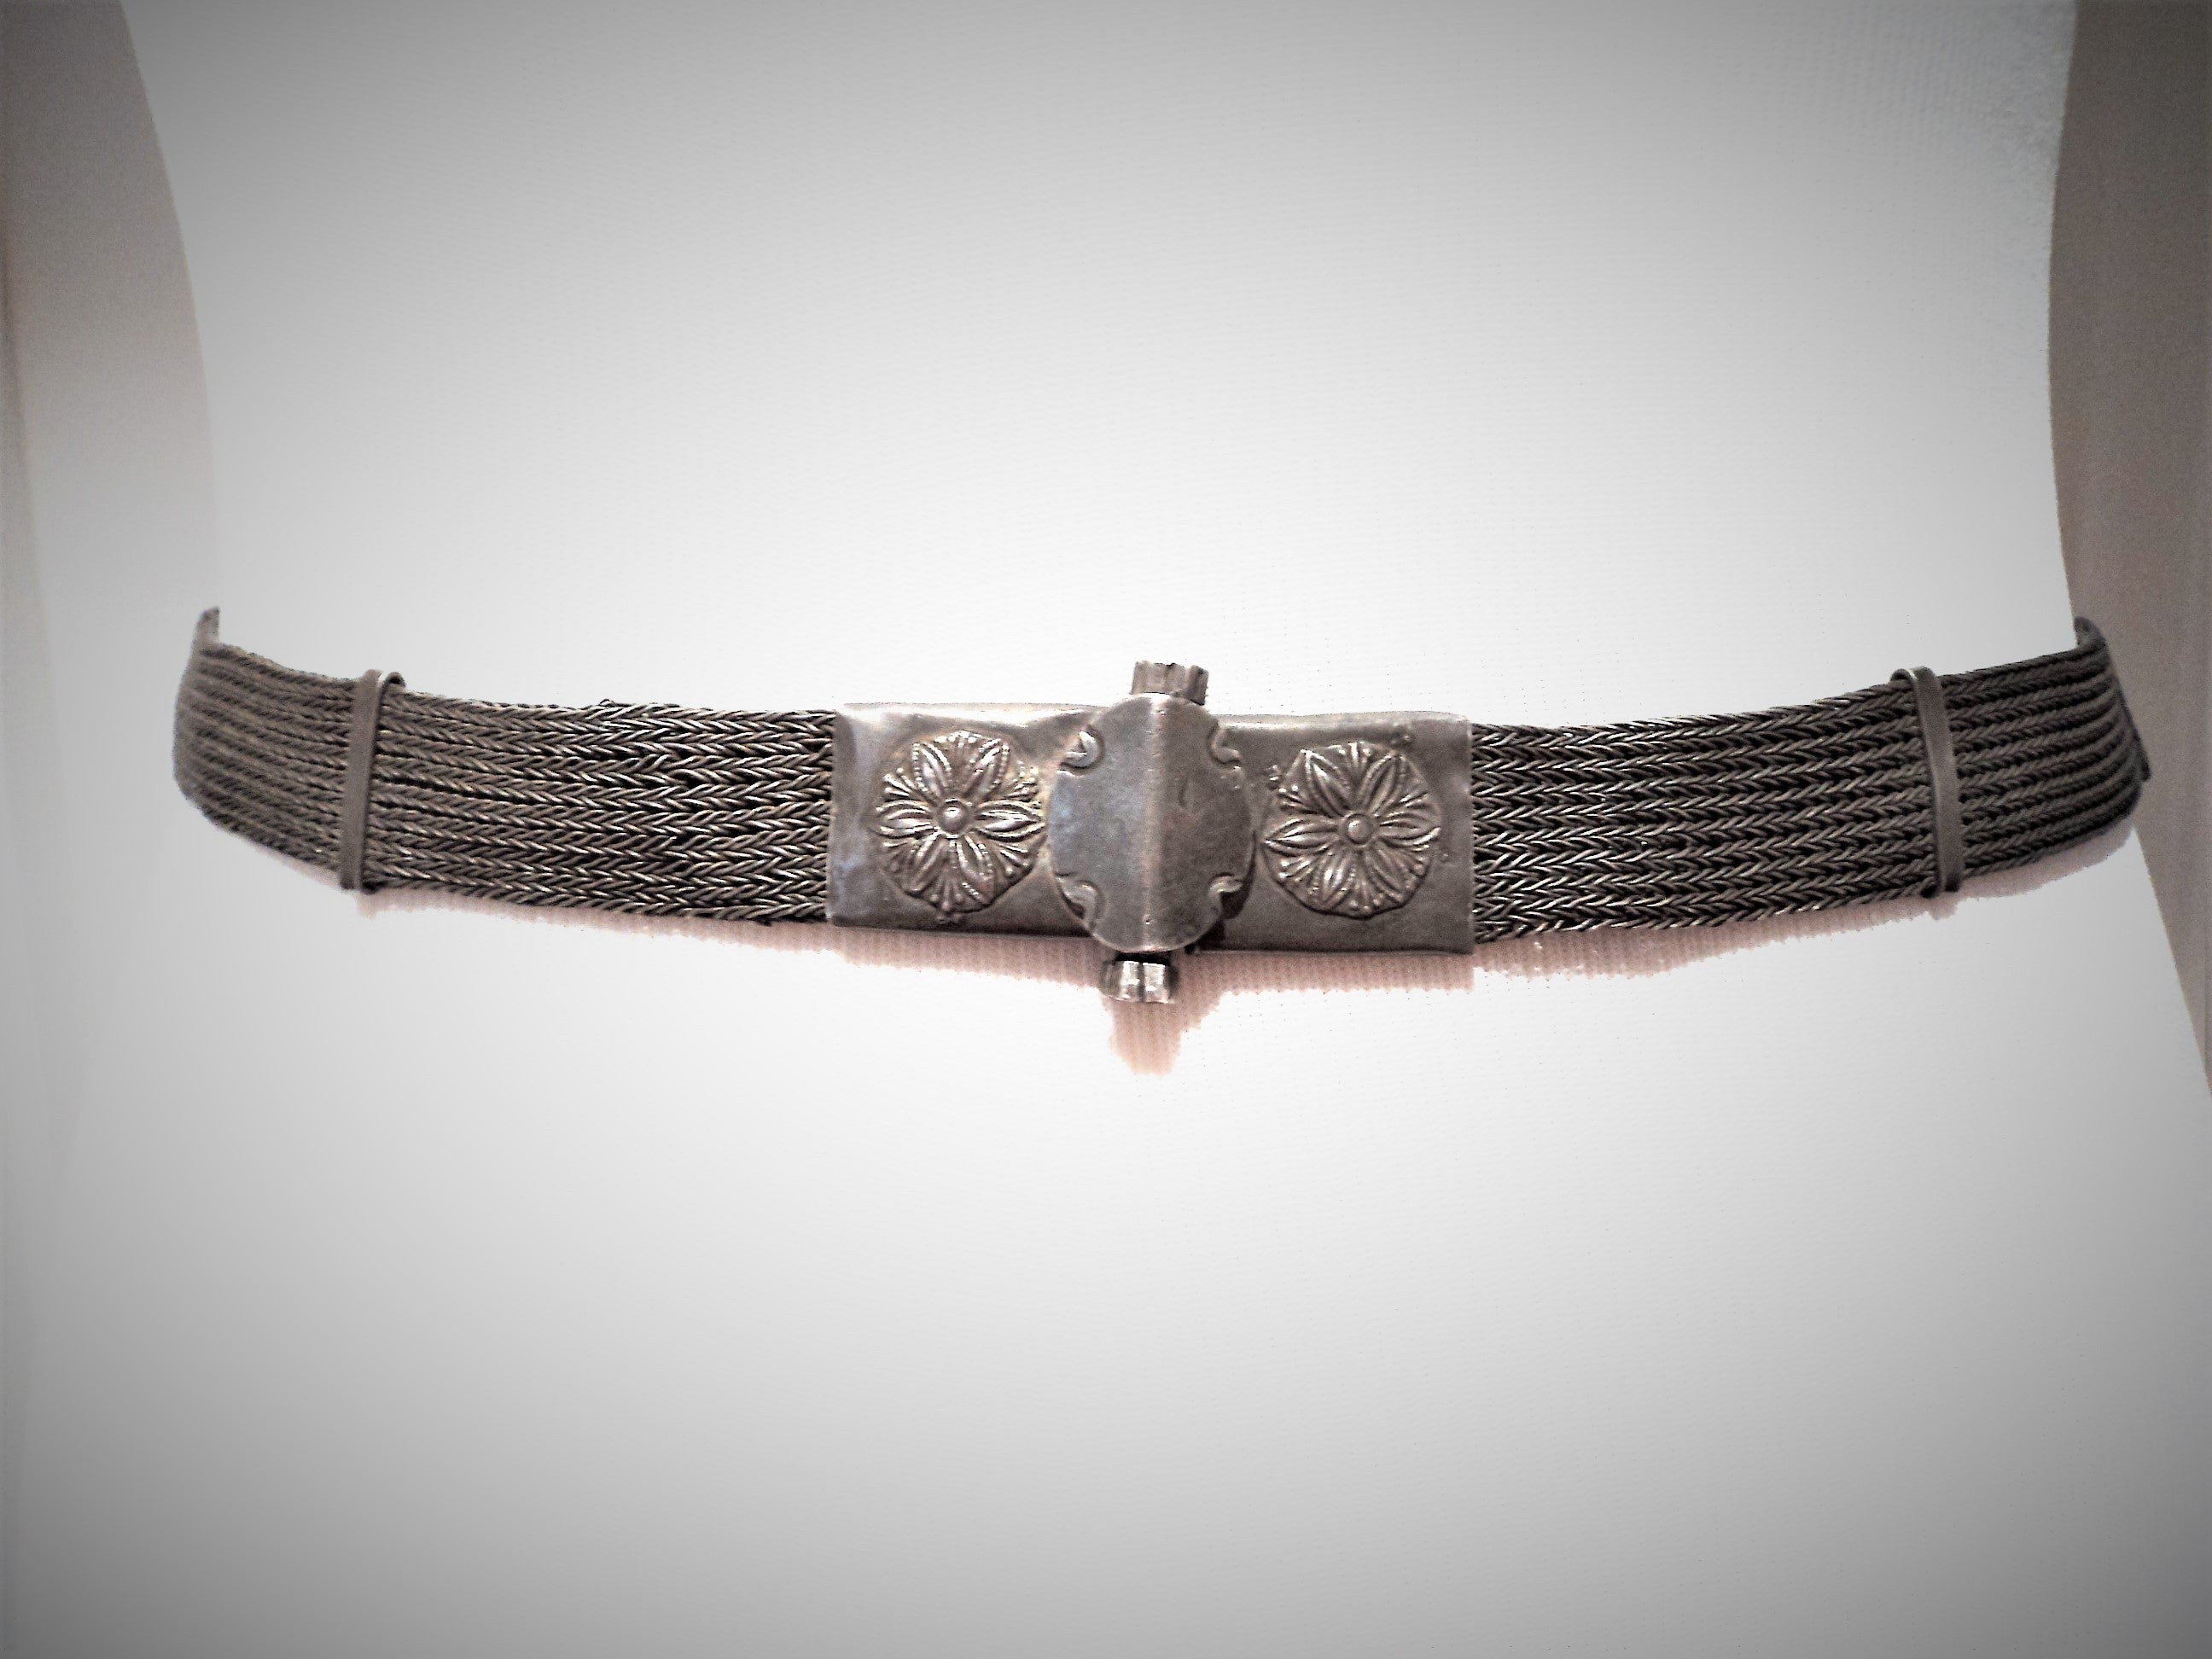 Antique Old Silver Rajasthan India Belt